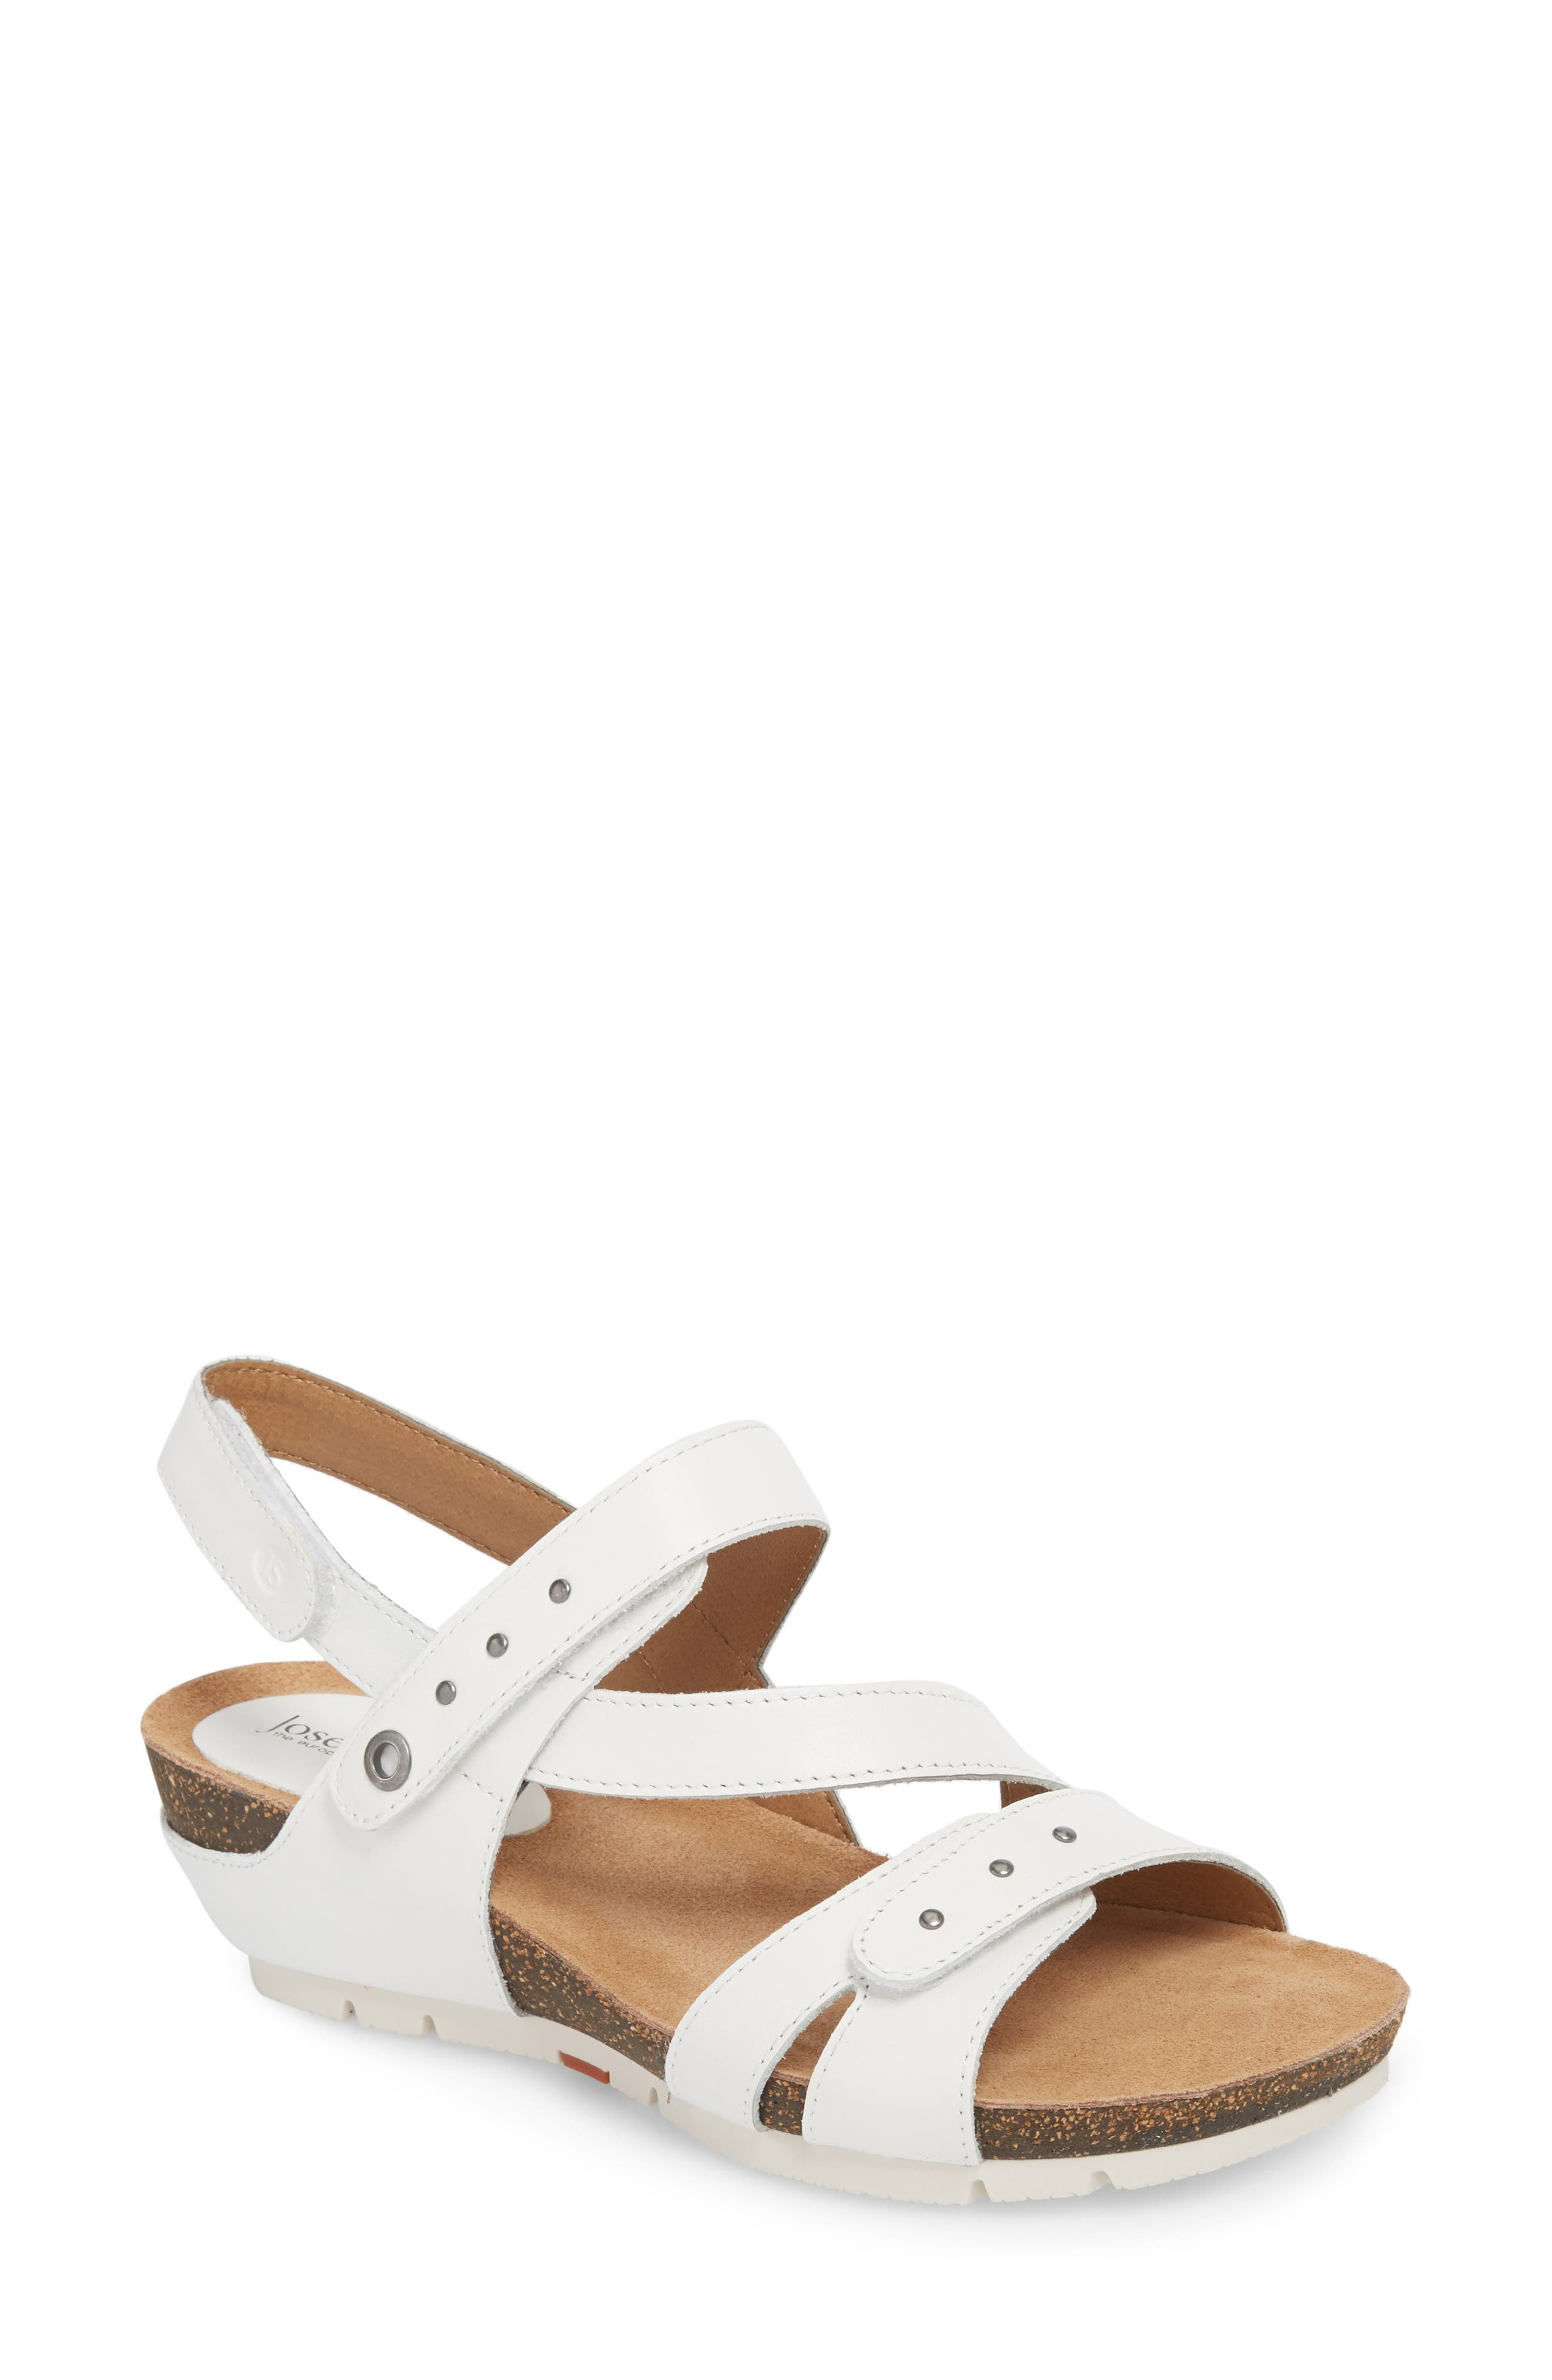 Alternate Image 1 Selected - Josef Seibel Hailey 33 Sandal (Women)